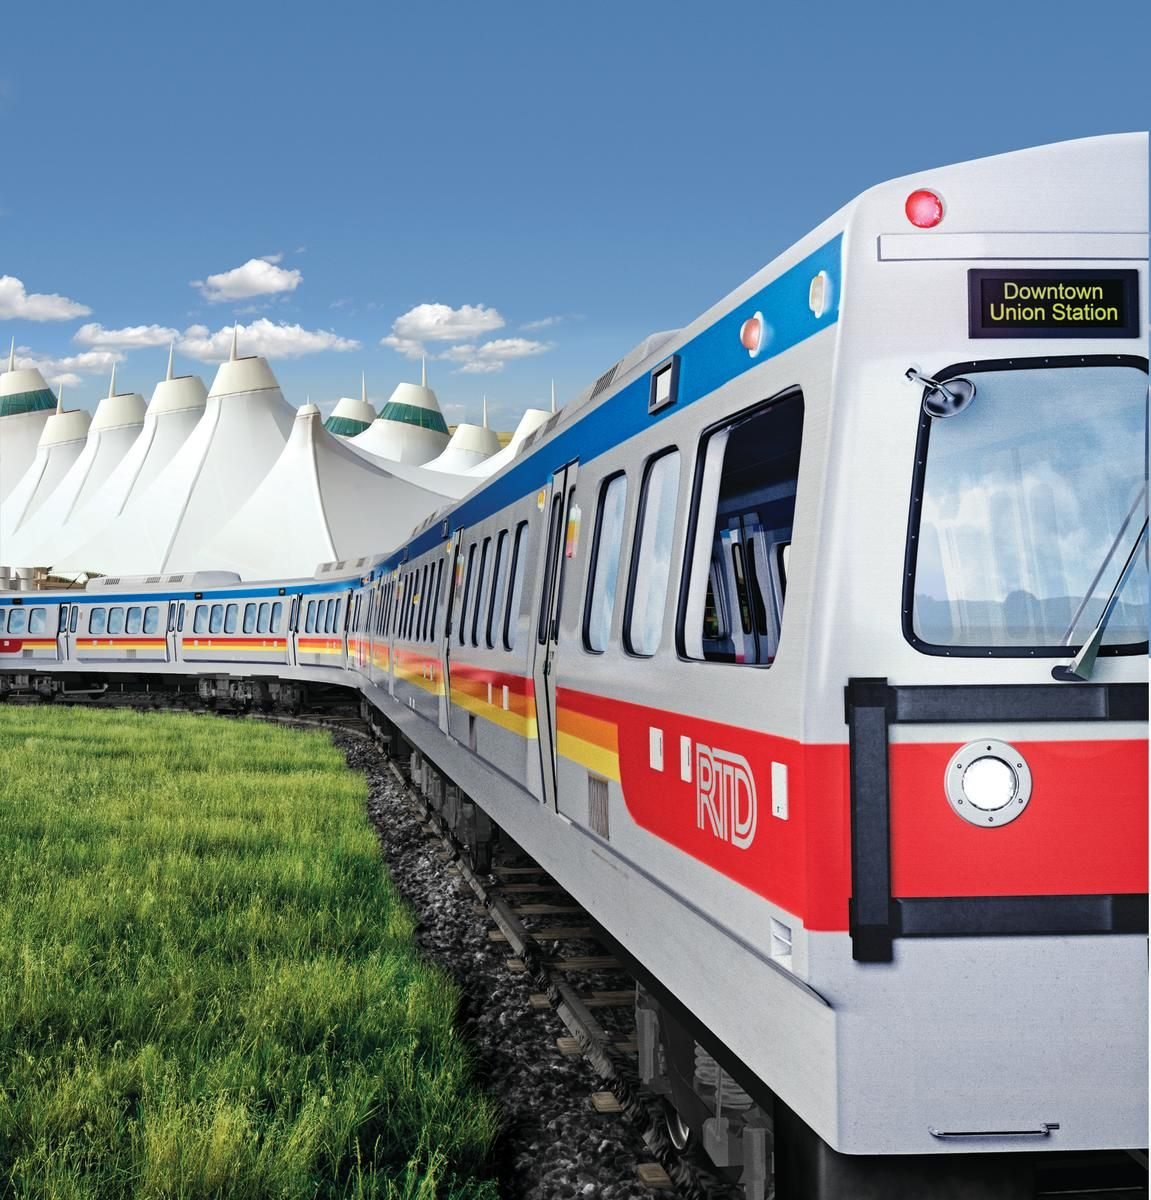 ab4db9b1fe0ed0b4b94e7cbafd9b77bd - How To Get From Denver Airport To Downtown Denver